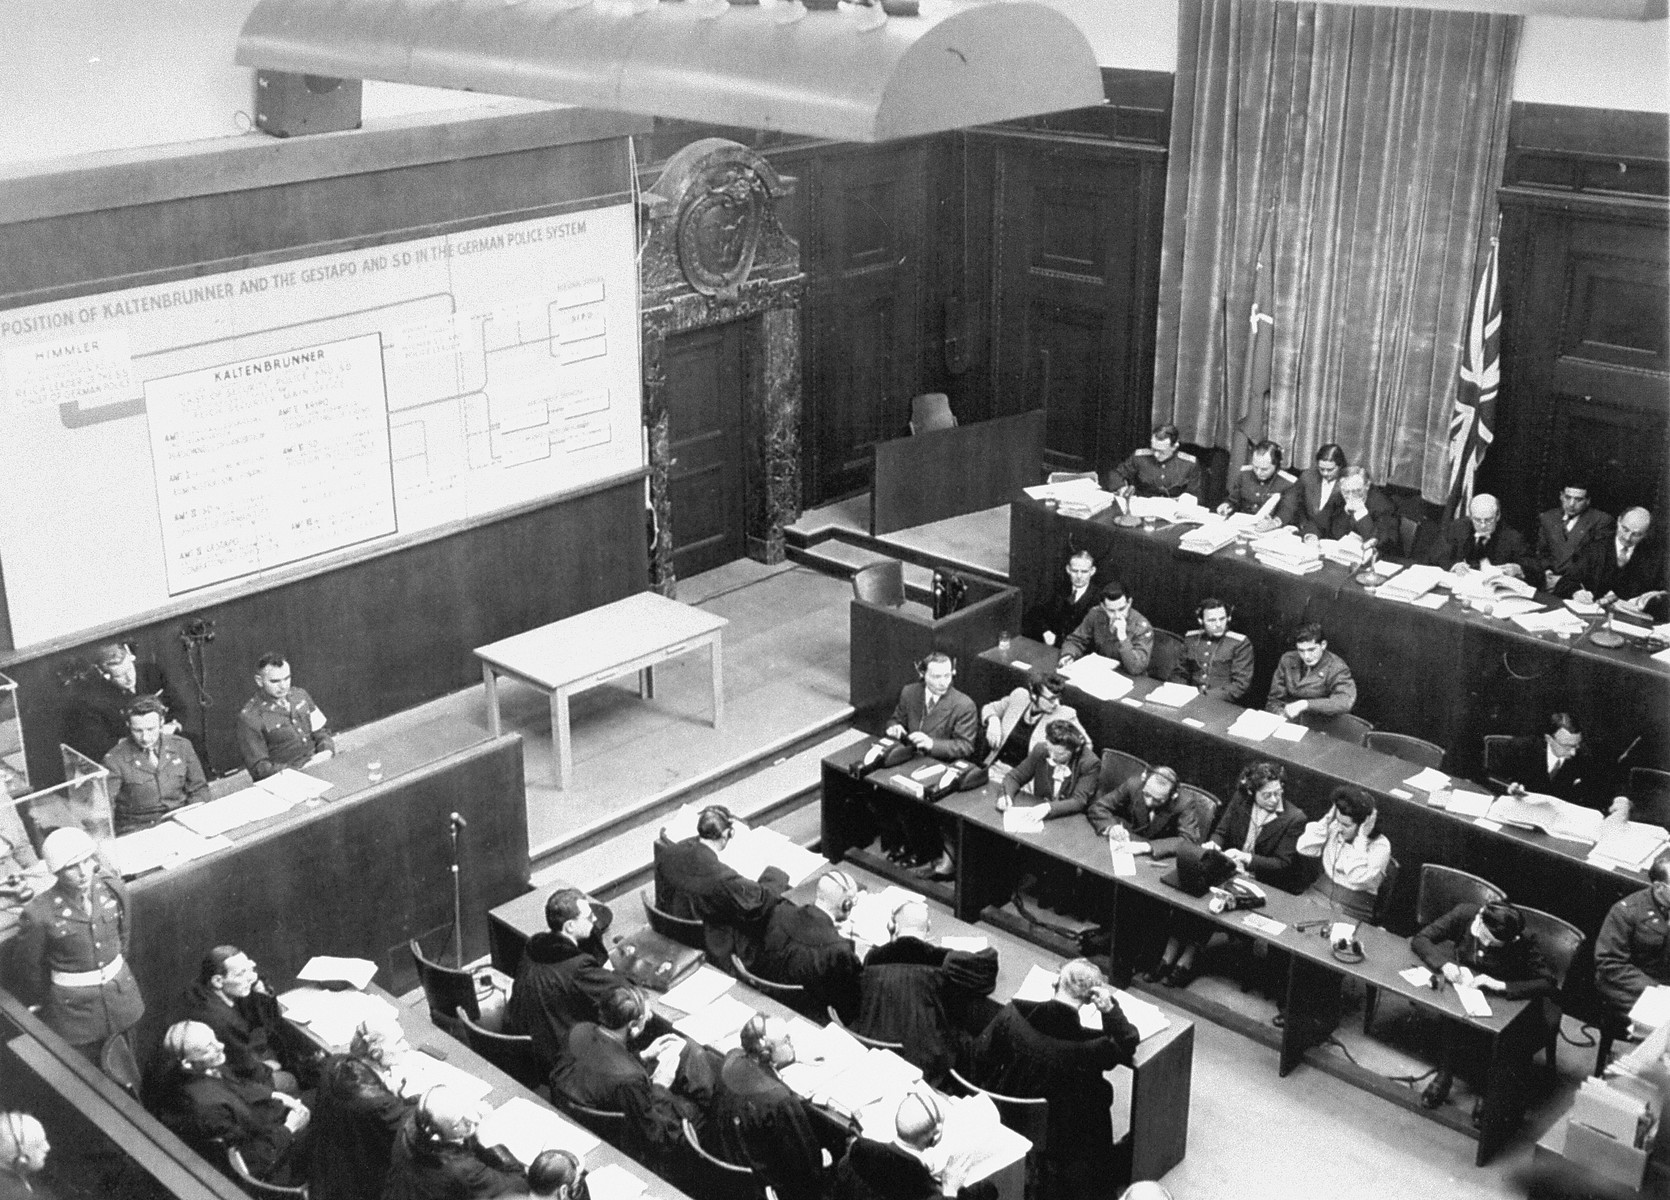 A chart on the wall, presented by the prosecution, illustrates the Gestapo organization controlled by Ernst Kaltenbrunner, a defendant at the International Military Tribunal trial of war criminals at Nuremberg.